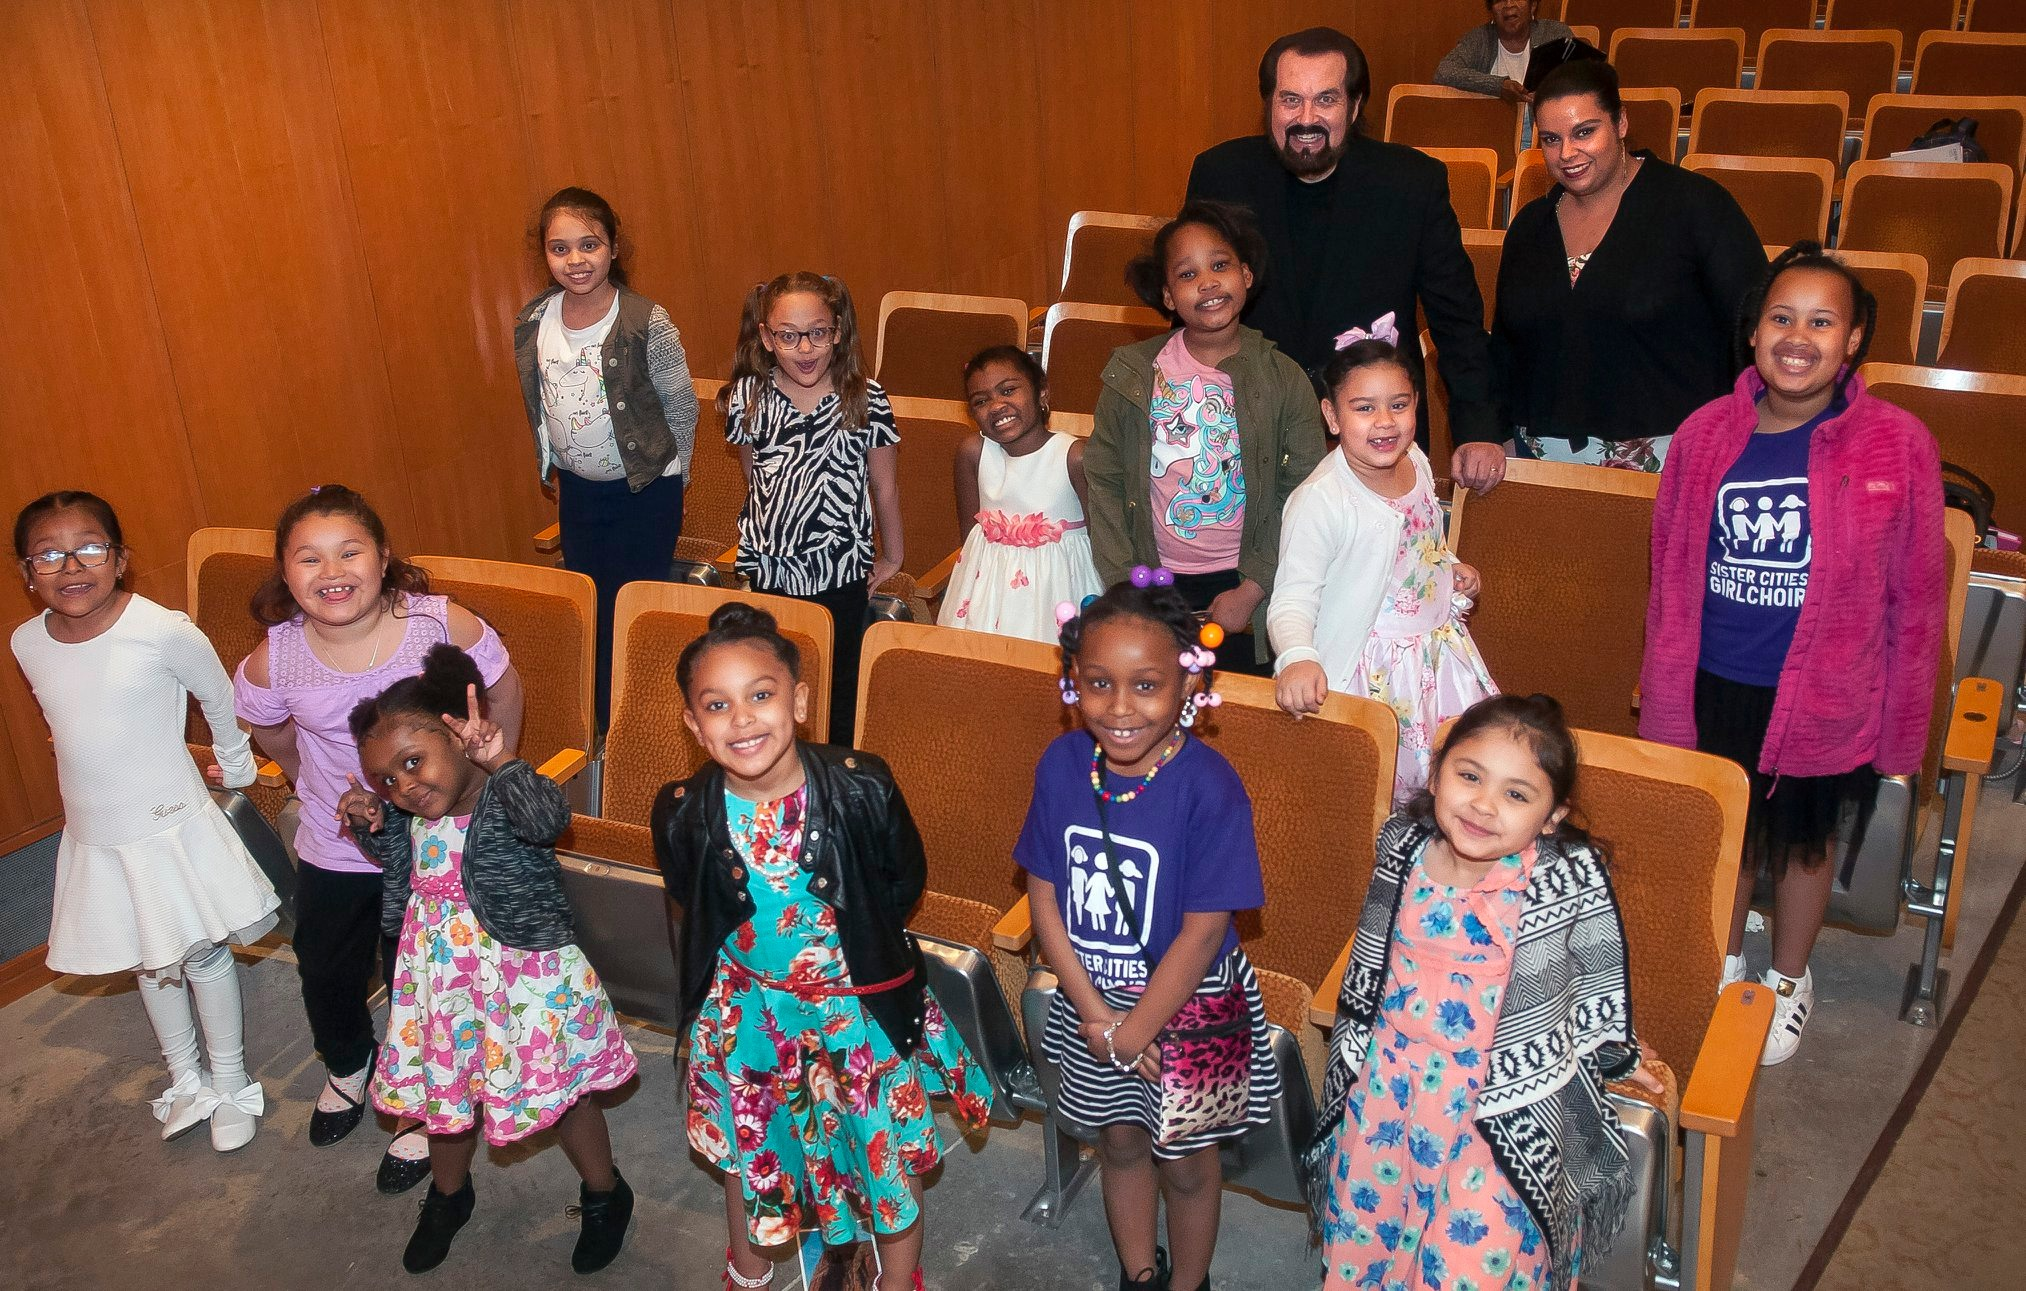 Sister Cities Girlchoir at The Concert Hall at Drew University